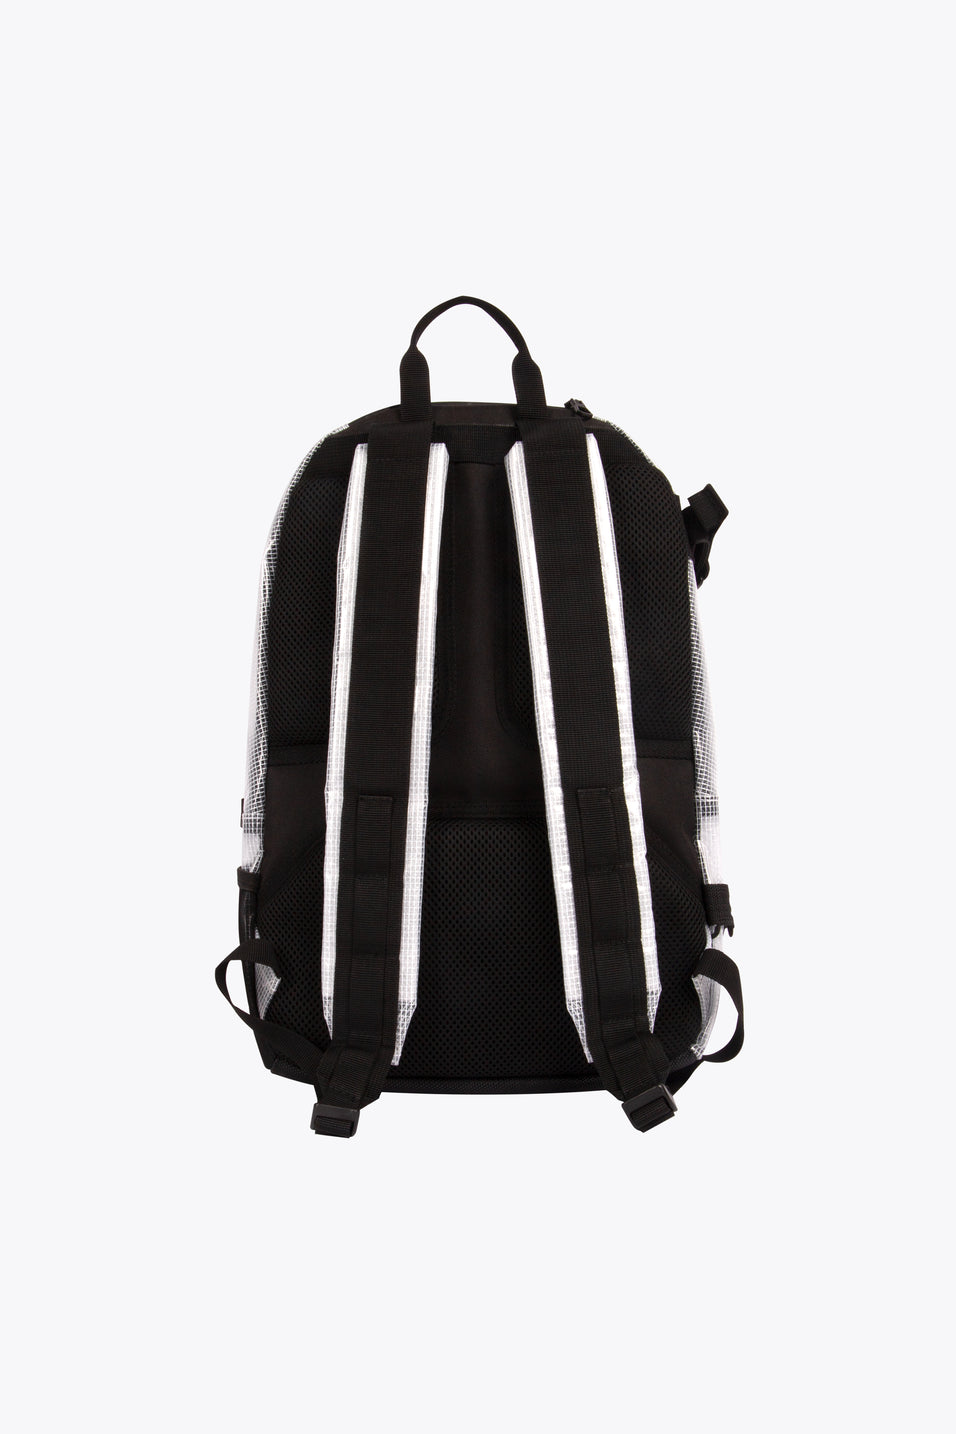 Translucent Medium Backpack